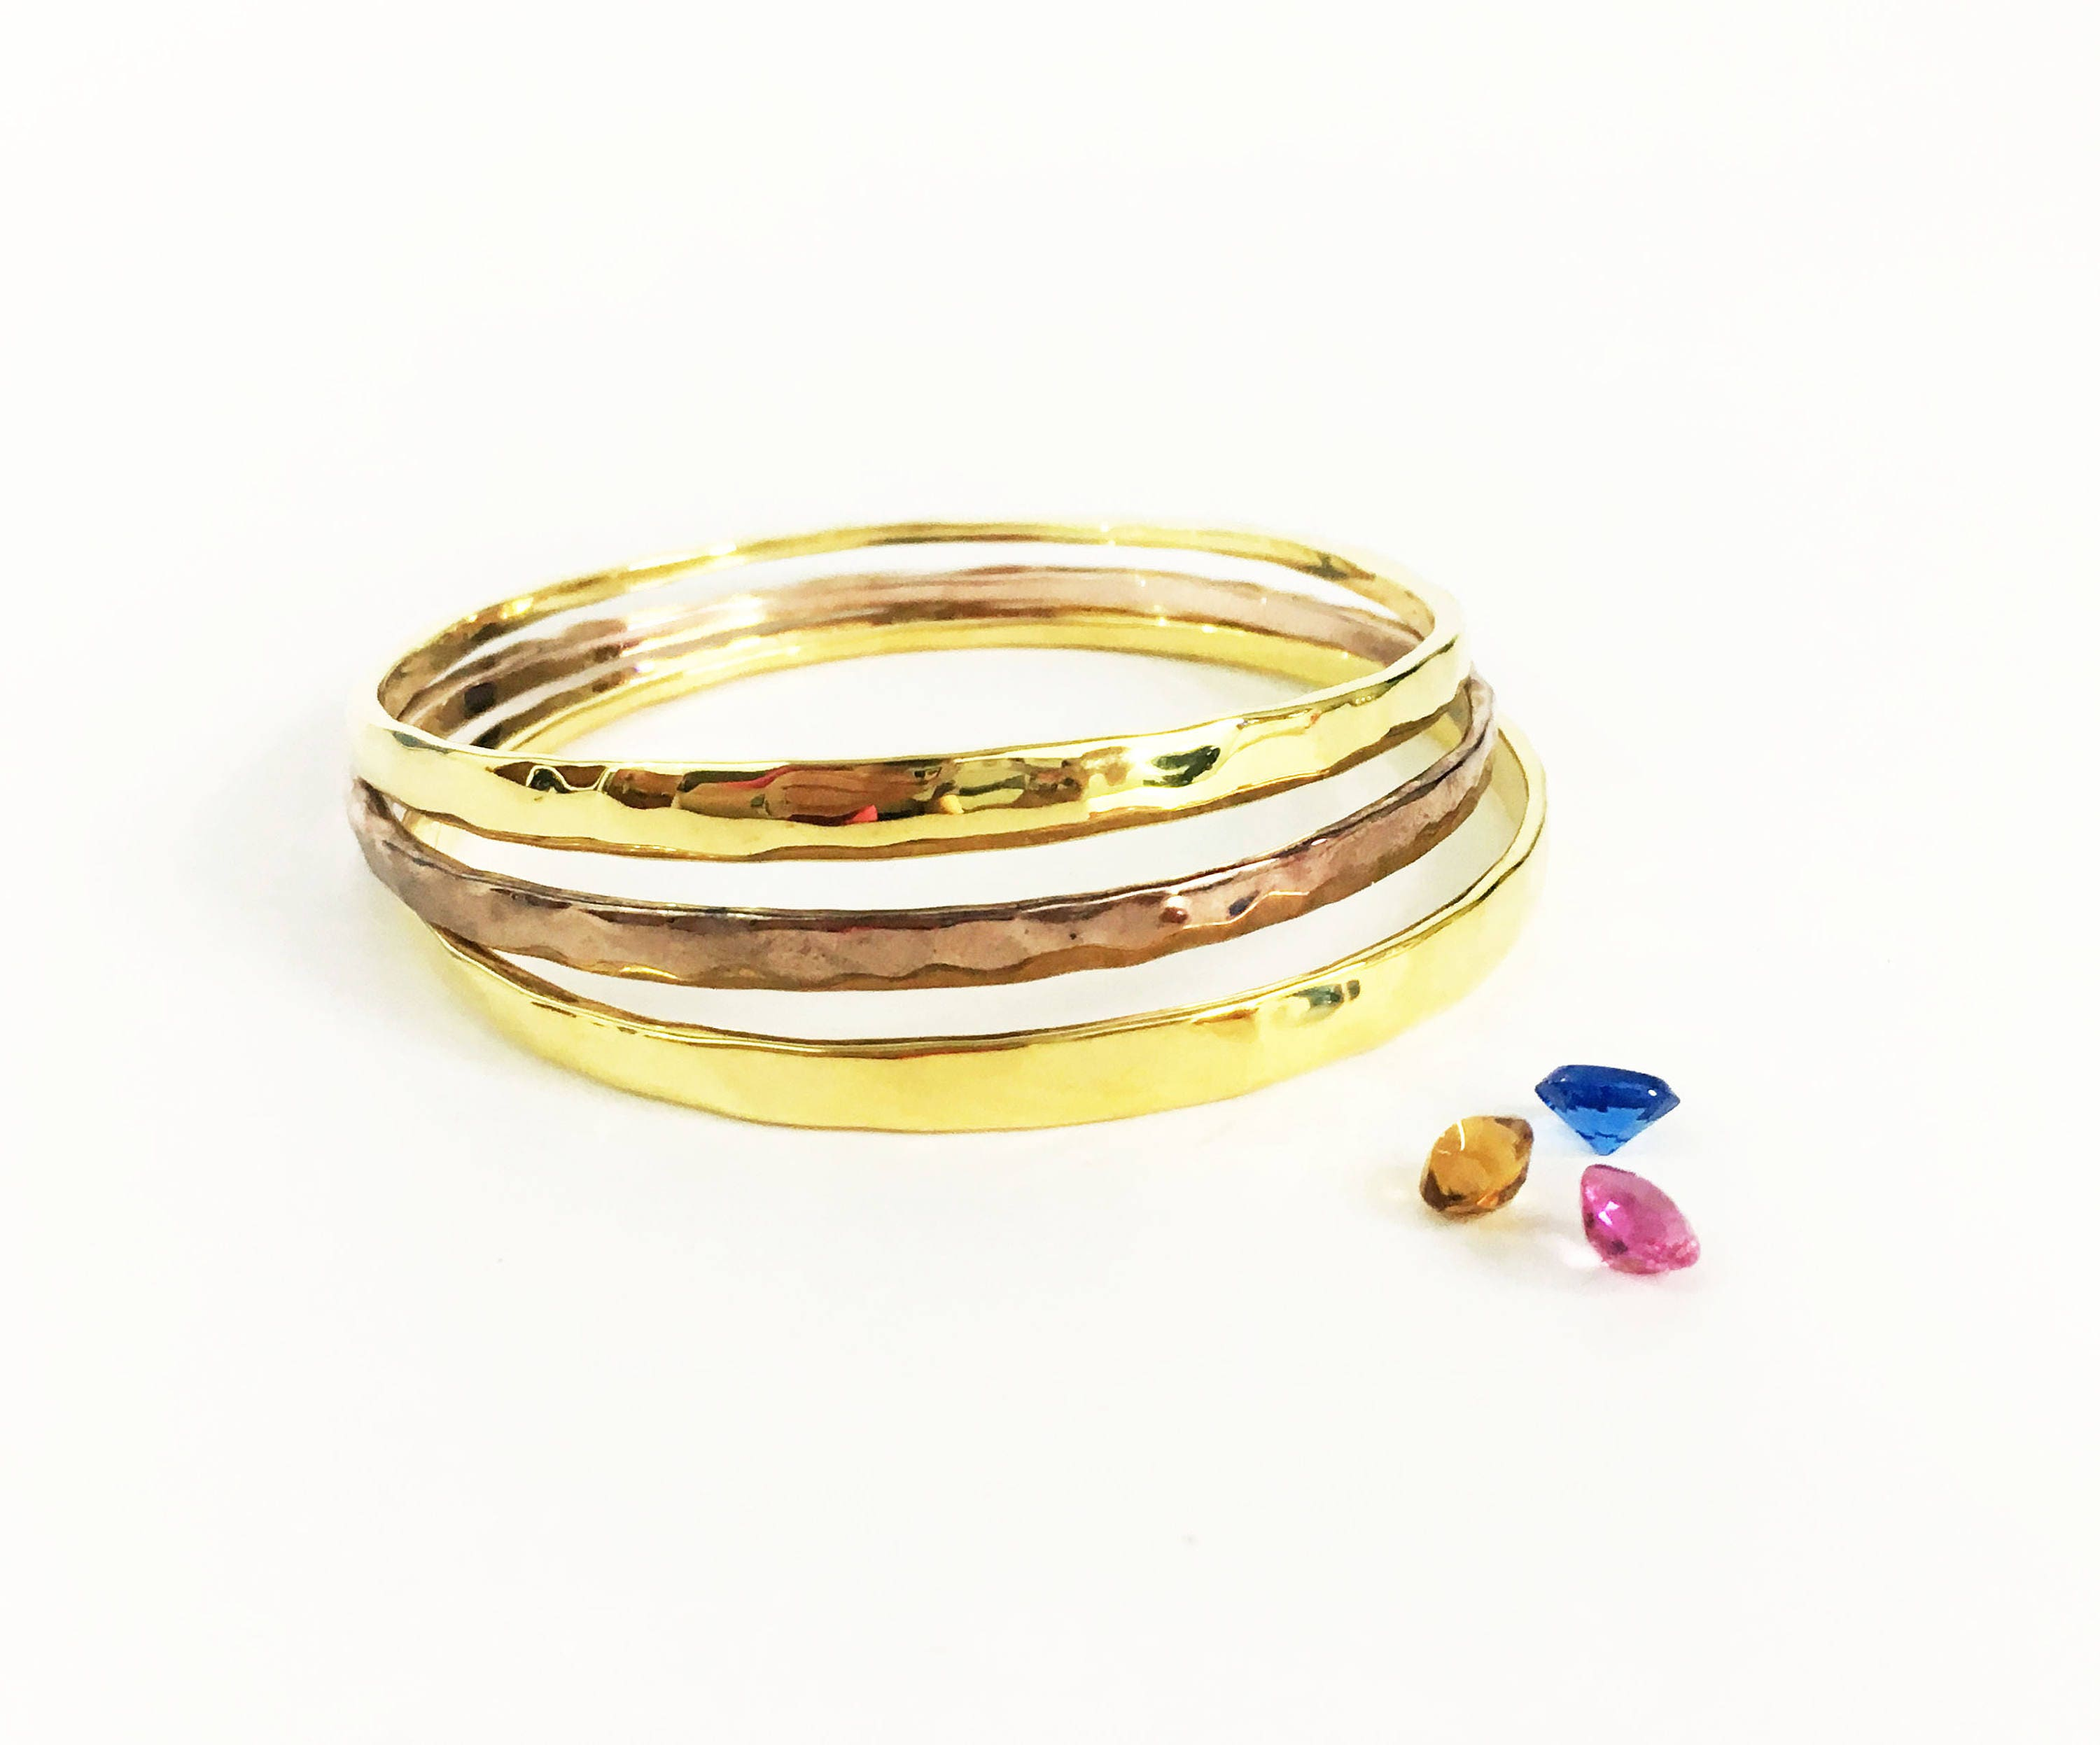 french gold retro century c mid j desktopdefault bracelet s